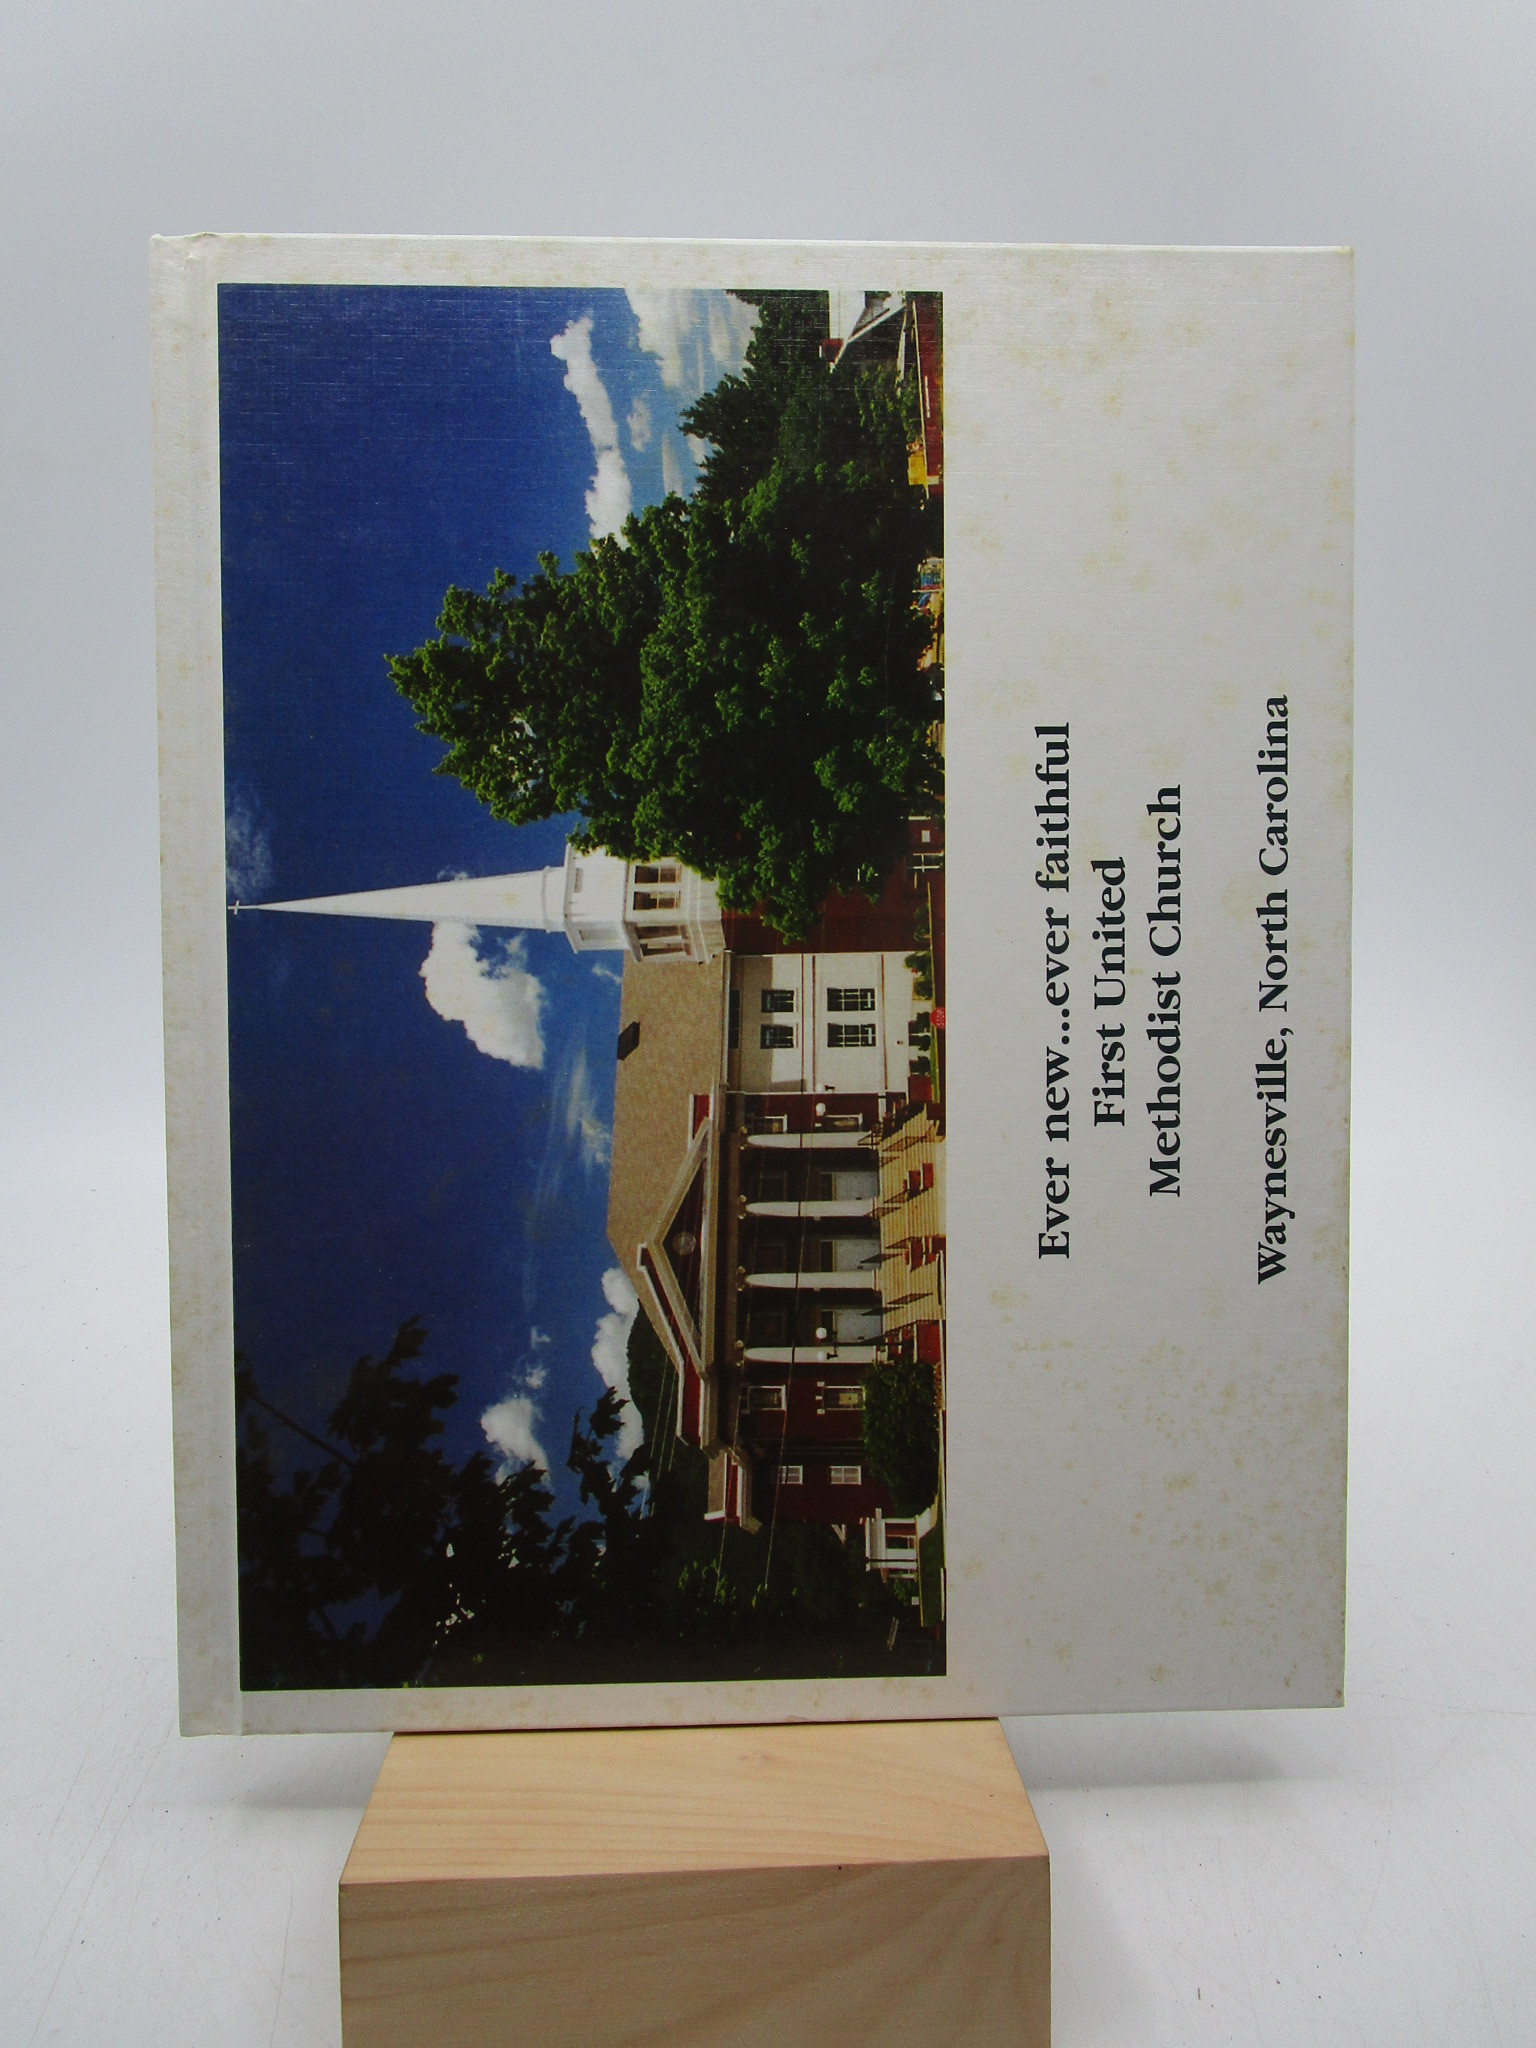 Image for Ever new...ever faithful: First United Methodist Church, Waynesville, North Carolina (Membership Directory) First Edition